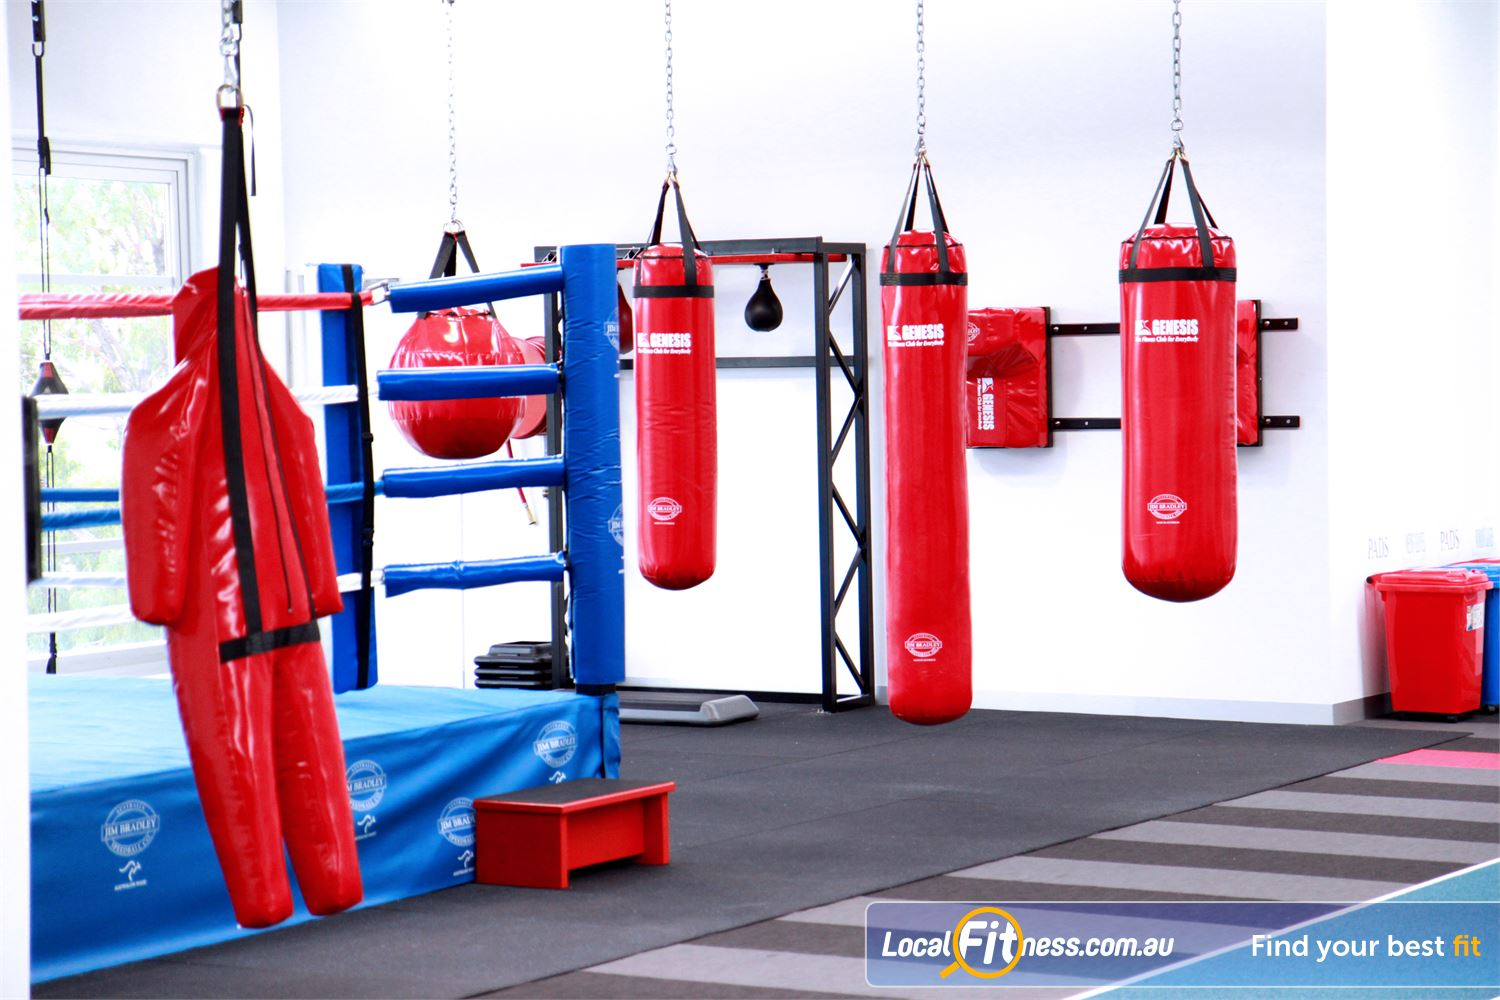 Genesis Fitness Clubs Near Avondale Heights The custom built Maidstone boxing studio.